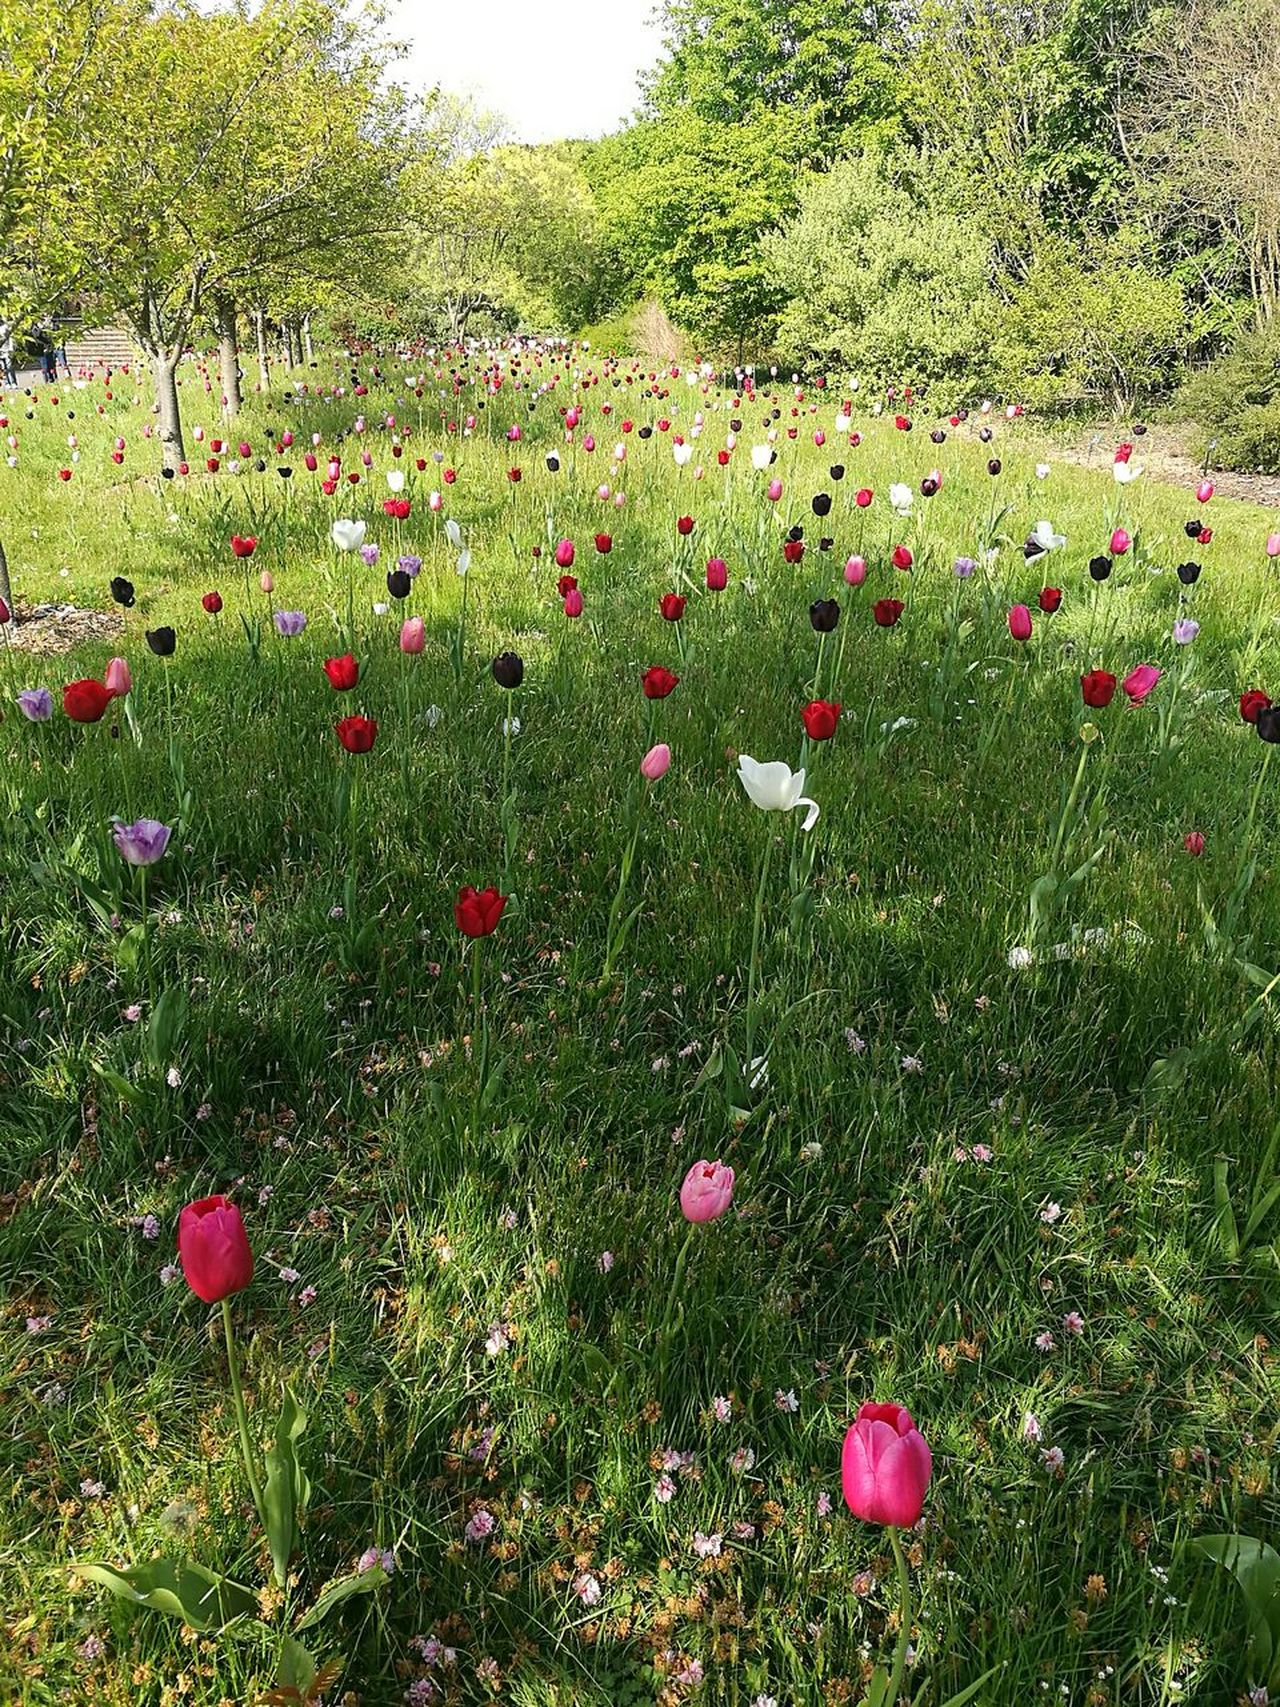 Tulips Tulip Flowers Tulips🌷 Multi Colored Tulips In The Wild Flowers April Spring Flowers Tulip Flowers, Nature And Beauty Kew Gardens, London Spring Smartphone Photography P9 Field Nature Beauty In Nature Outdoors No People Freshness Grass Flower Growth Blooms Springtime